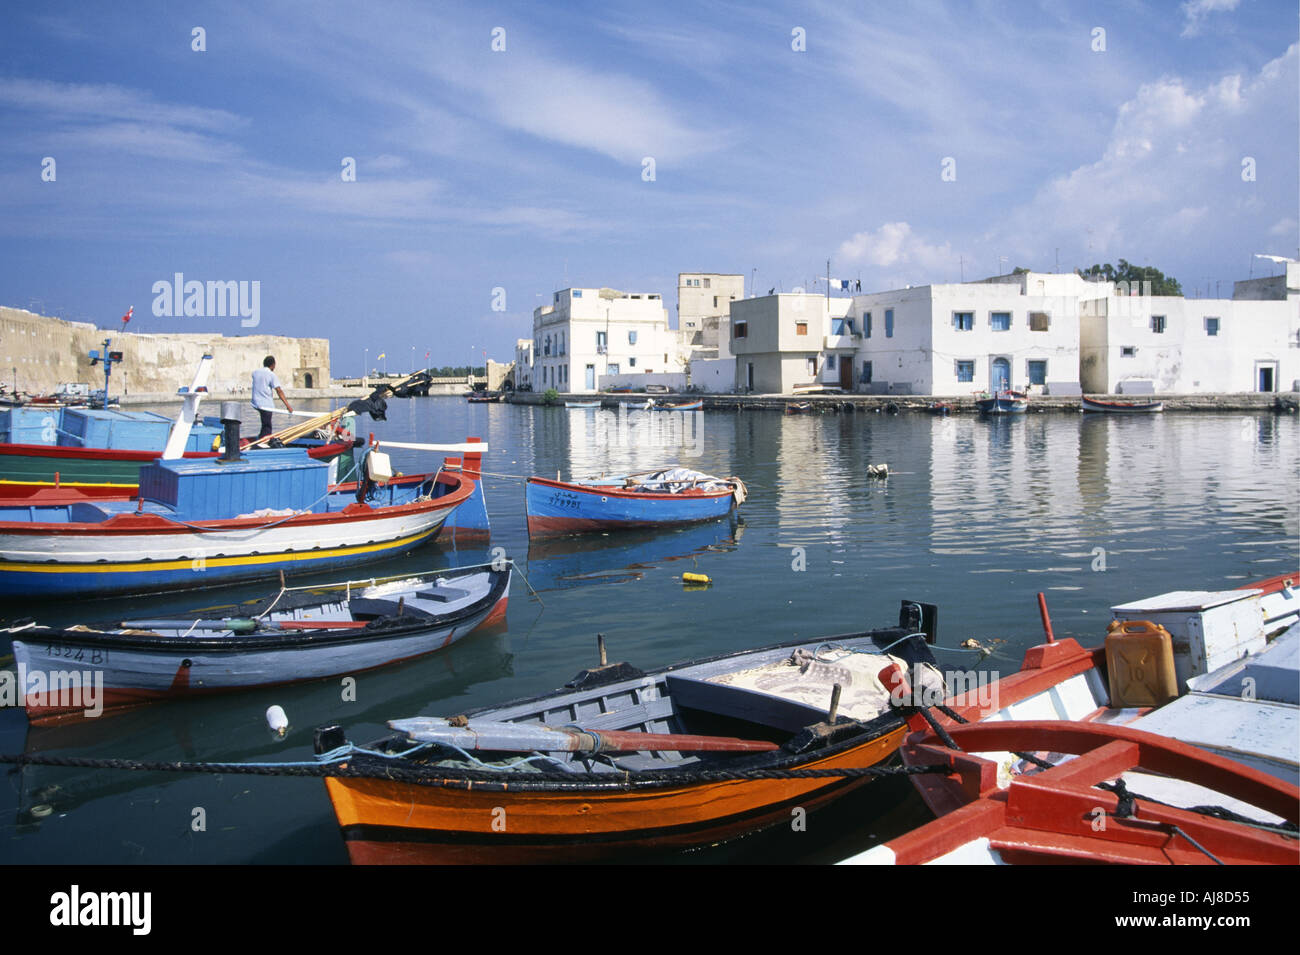 A man on the deck of a small boat of the fishing fleet tied up in the old corsair harbour at Bizerte encircled by the blue and white houses of the medina adjacent to the yellow stone walls of the kasbah Tunisia - Stock Image